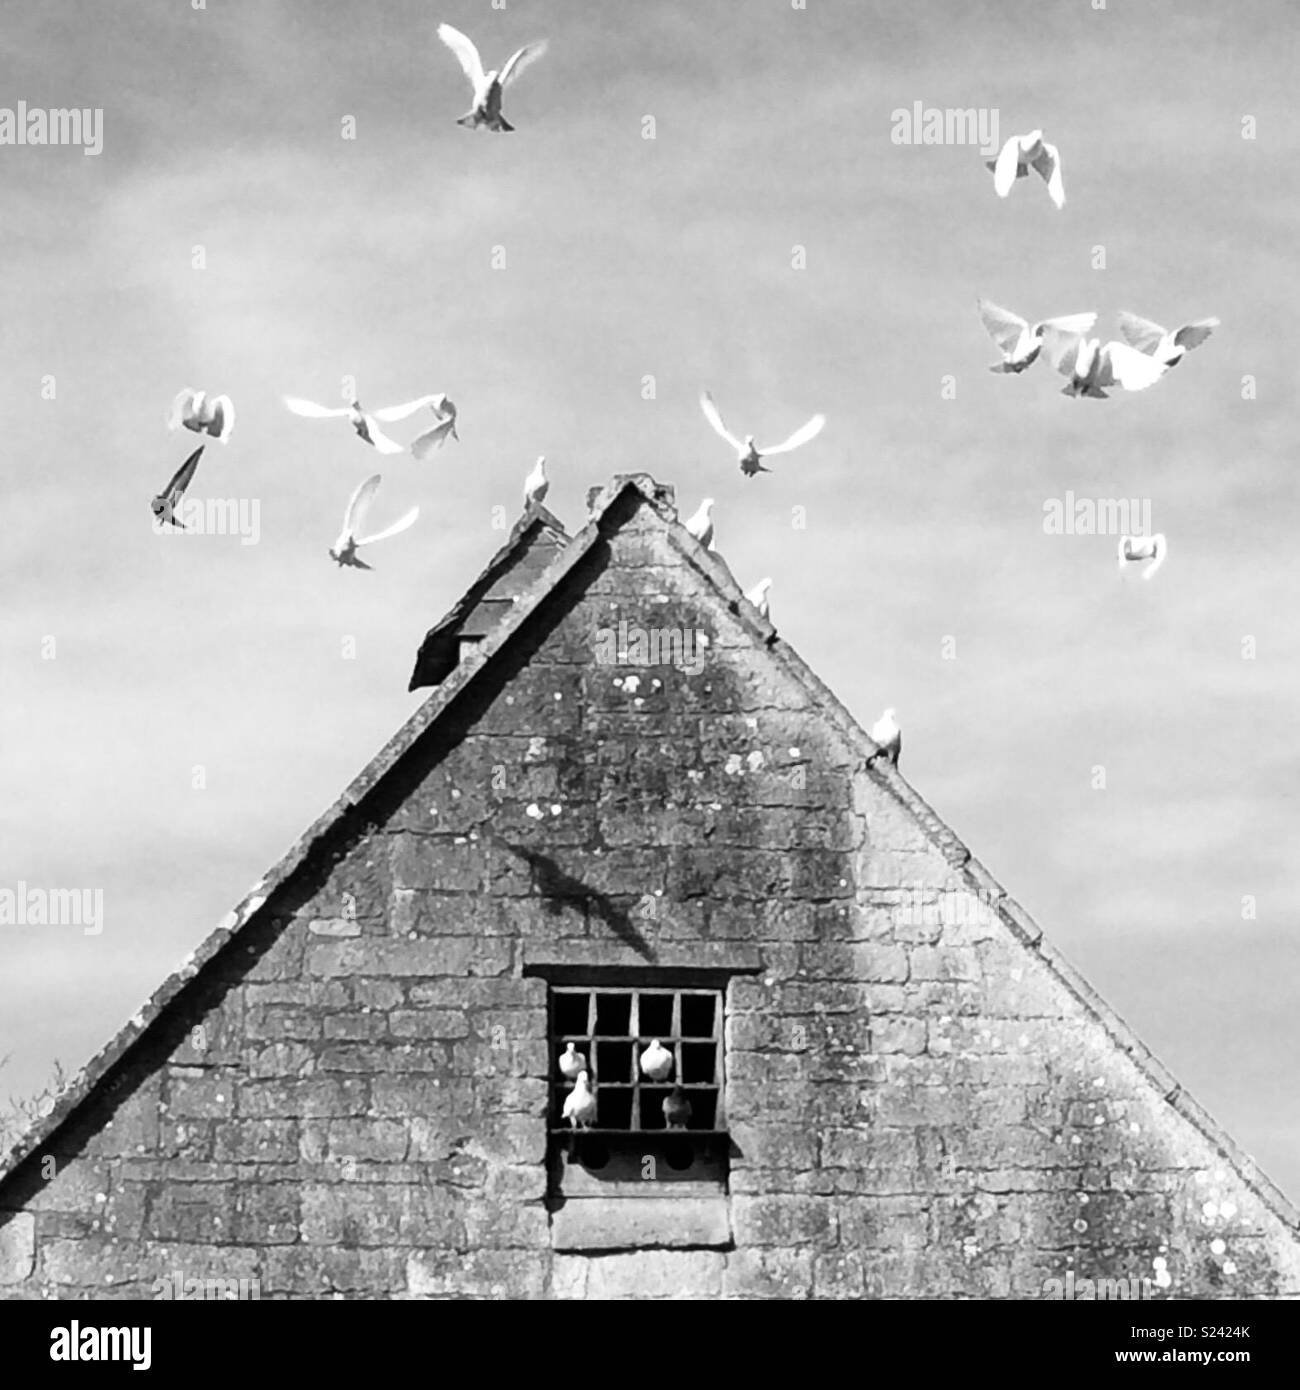 The Dovecote, Snowshill Manor, Gloucestershire. - Stock Image